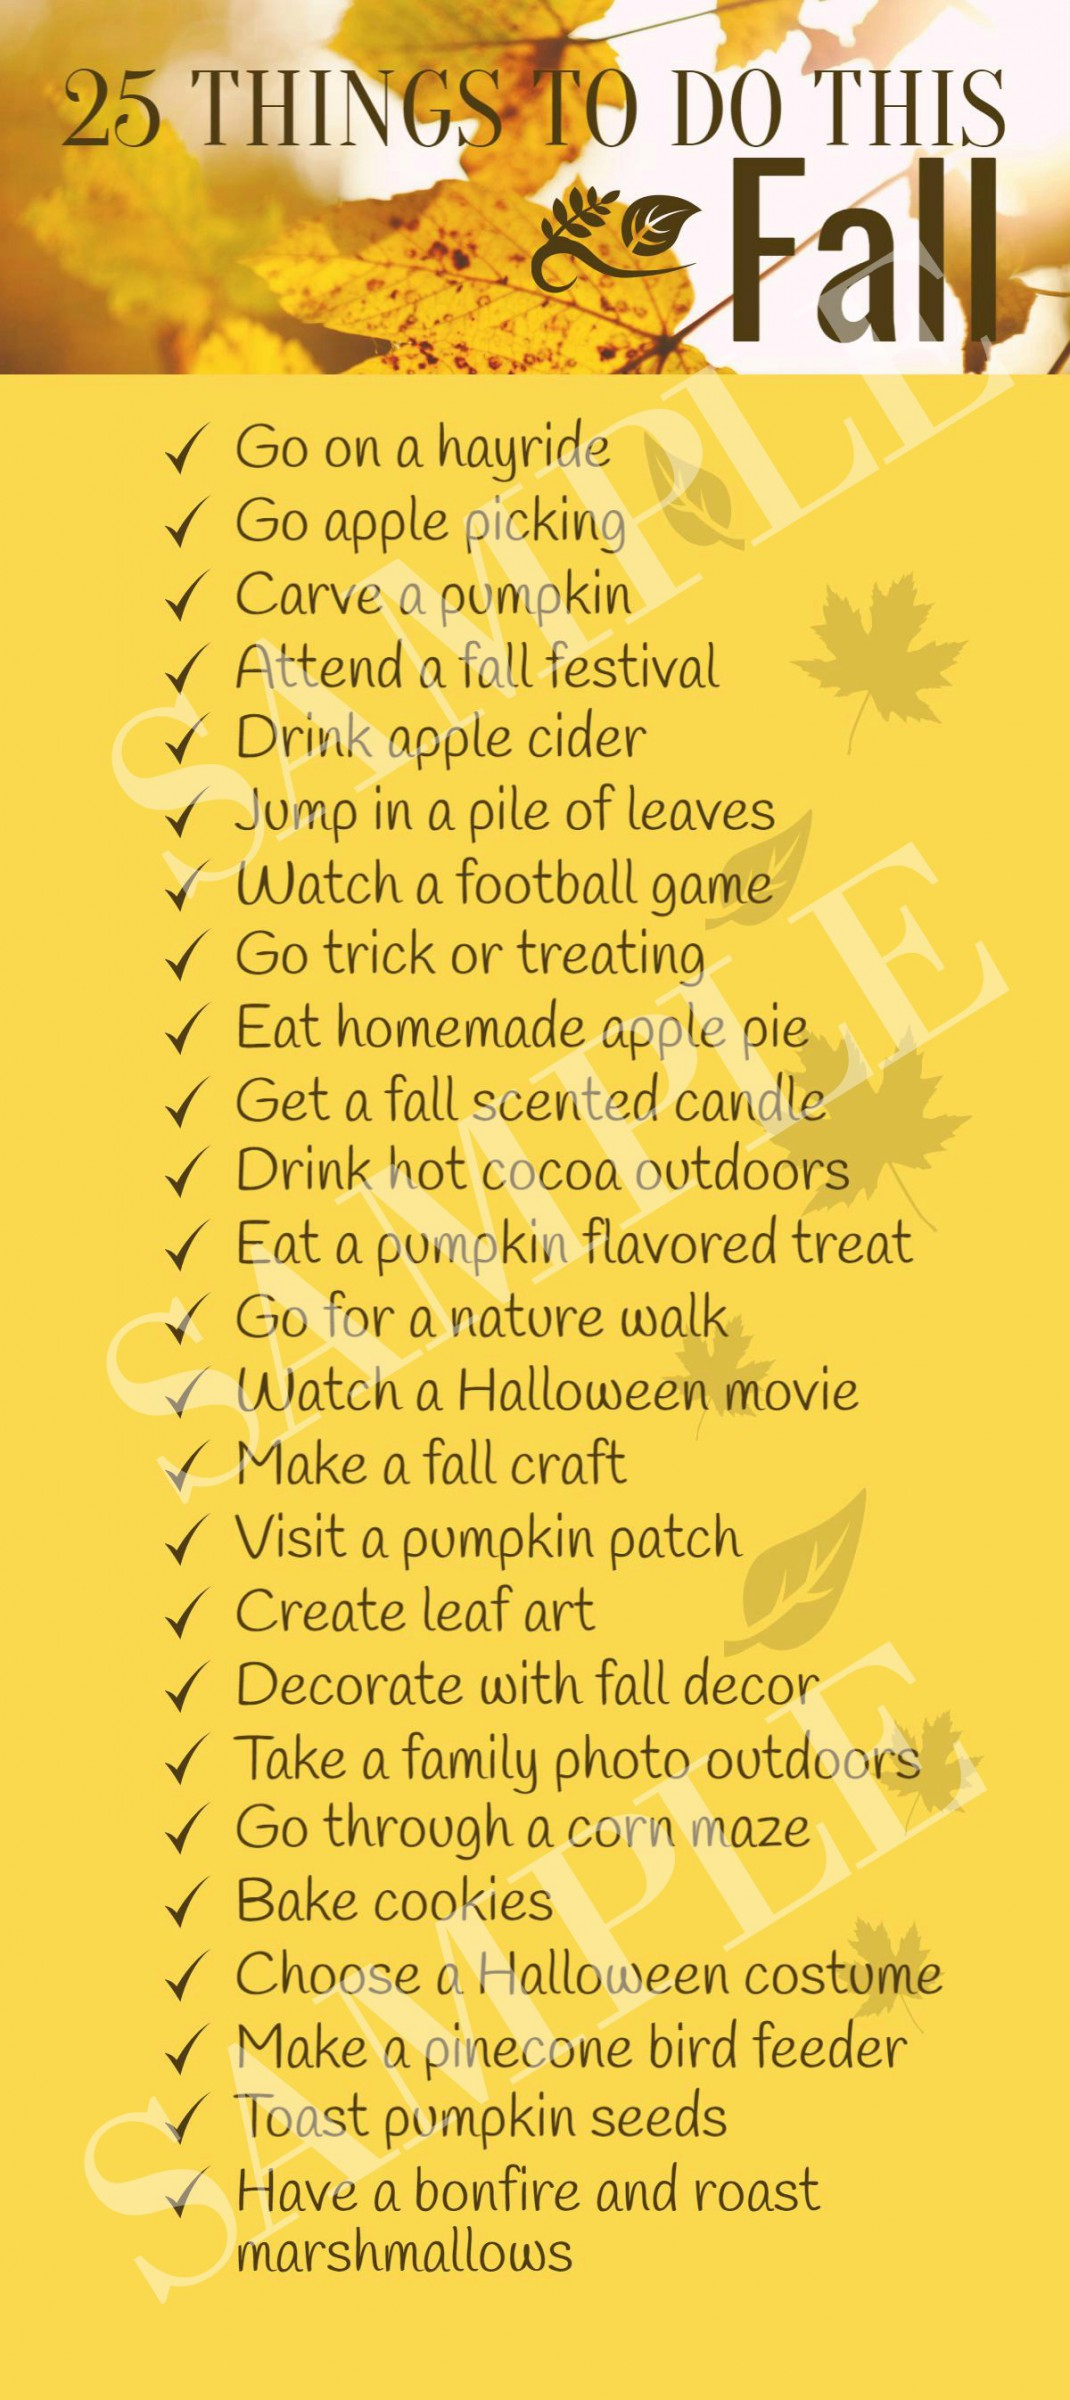 25ThingsToDoThisFall_PinterestGraphic_Sample5